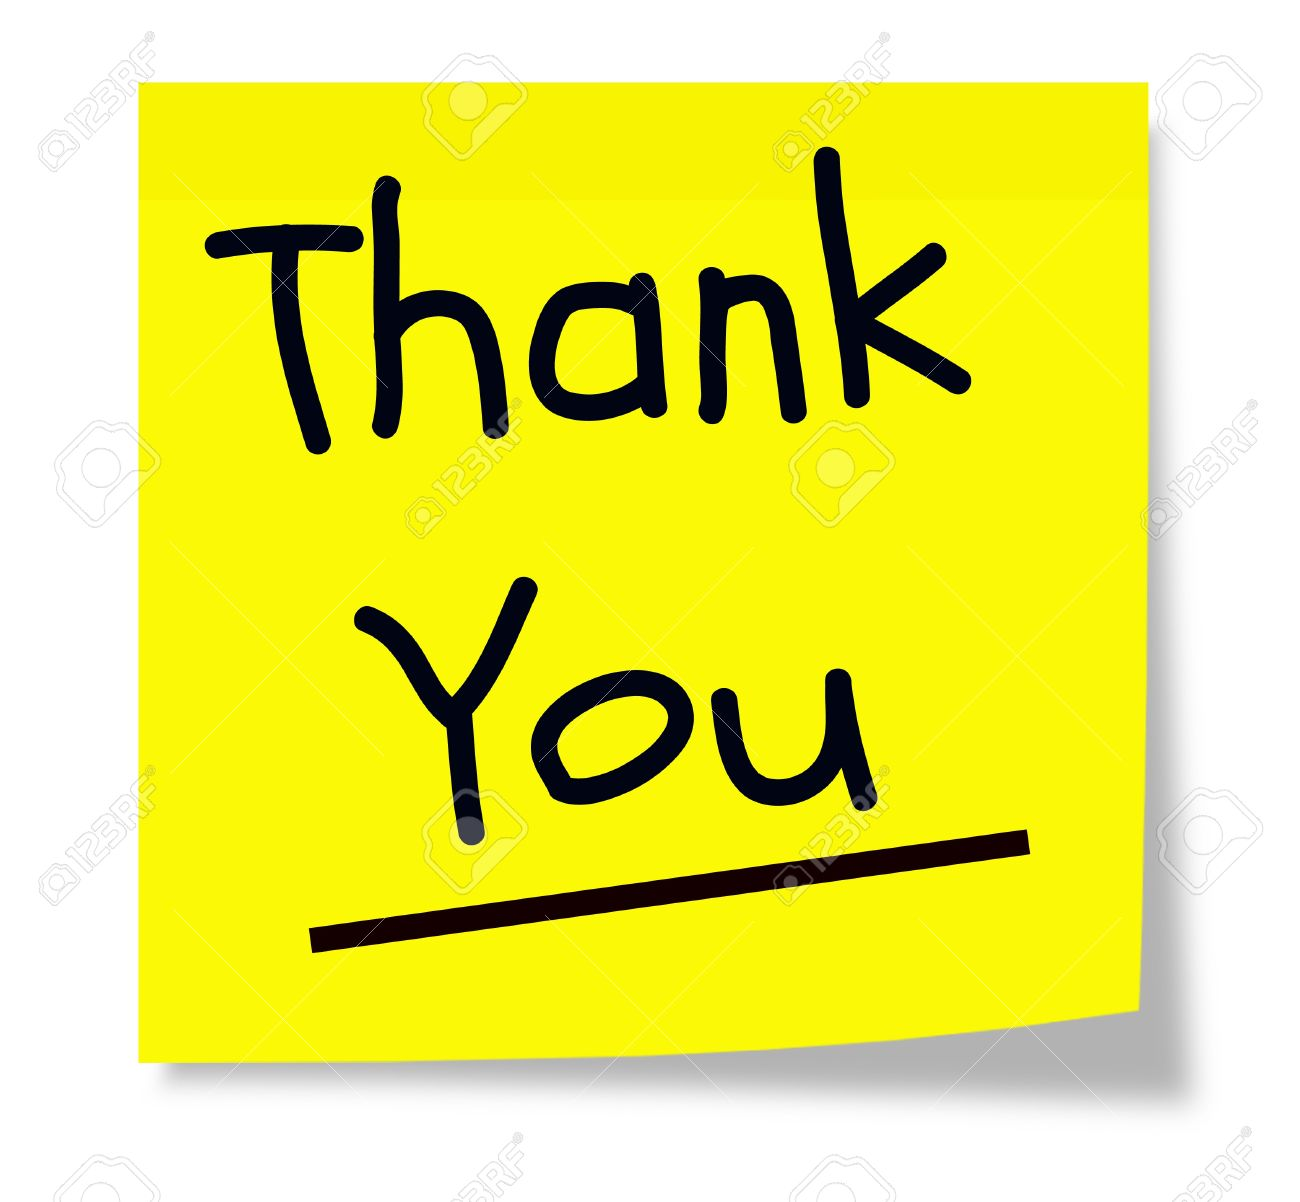 thank you note stock photos pictures royalty thank you thank you note a square sticky yellow note pad the words thank you written